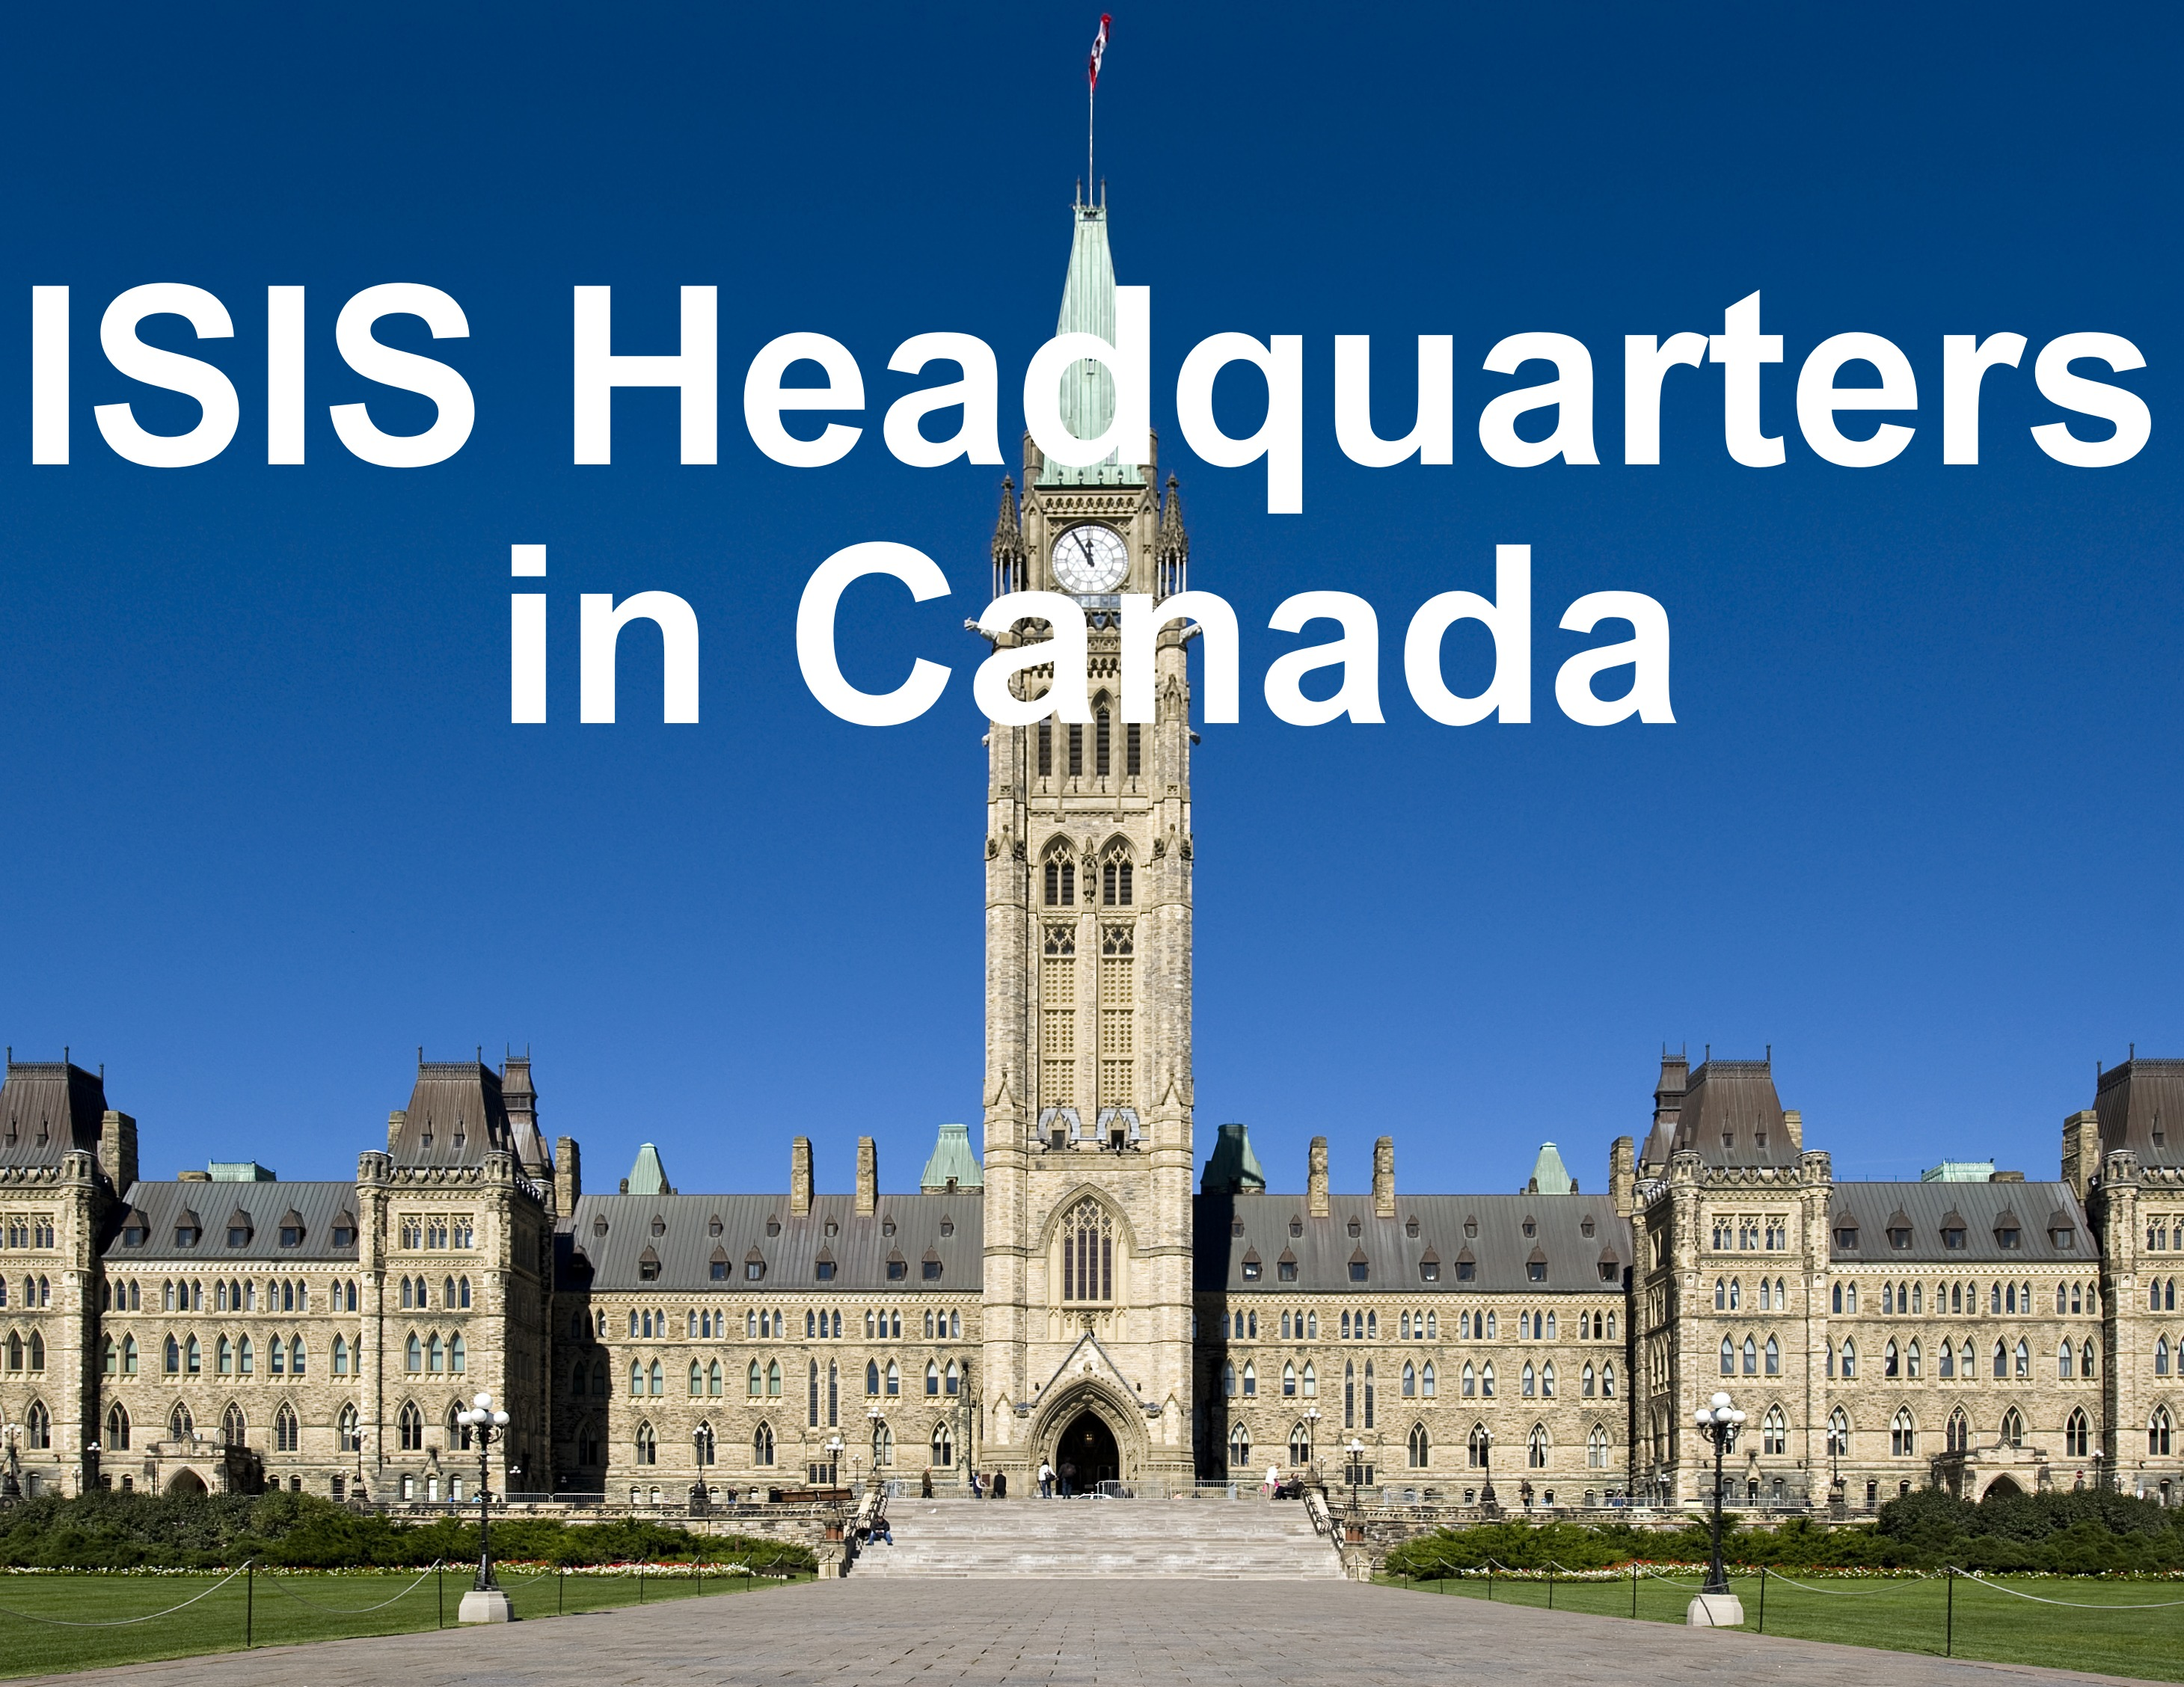 ISIS headquarters in Canada is parliament hill under Justin Trudeau